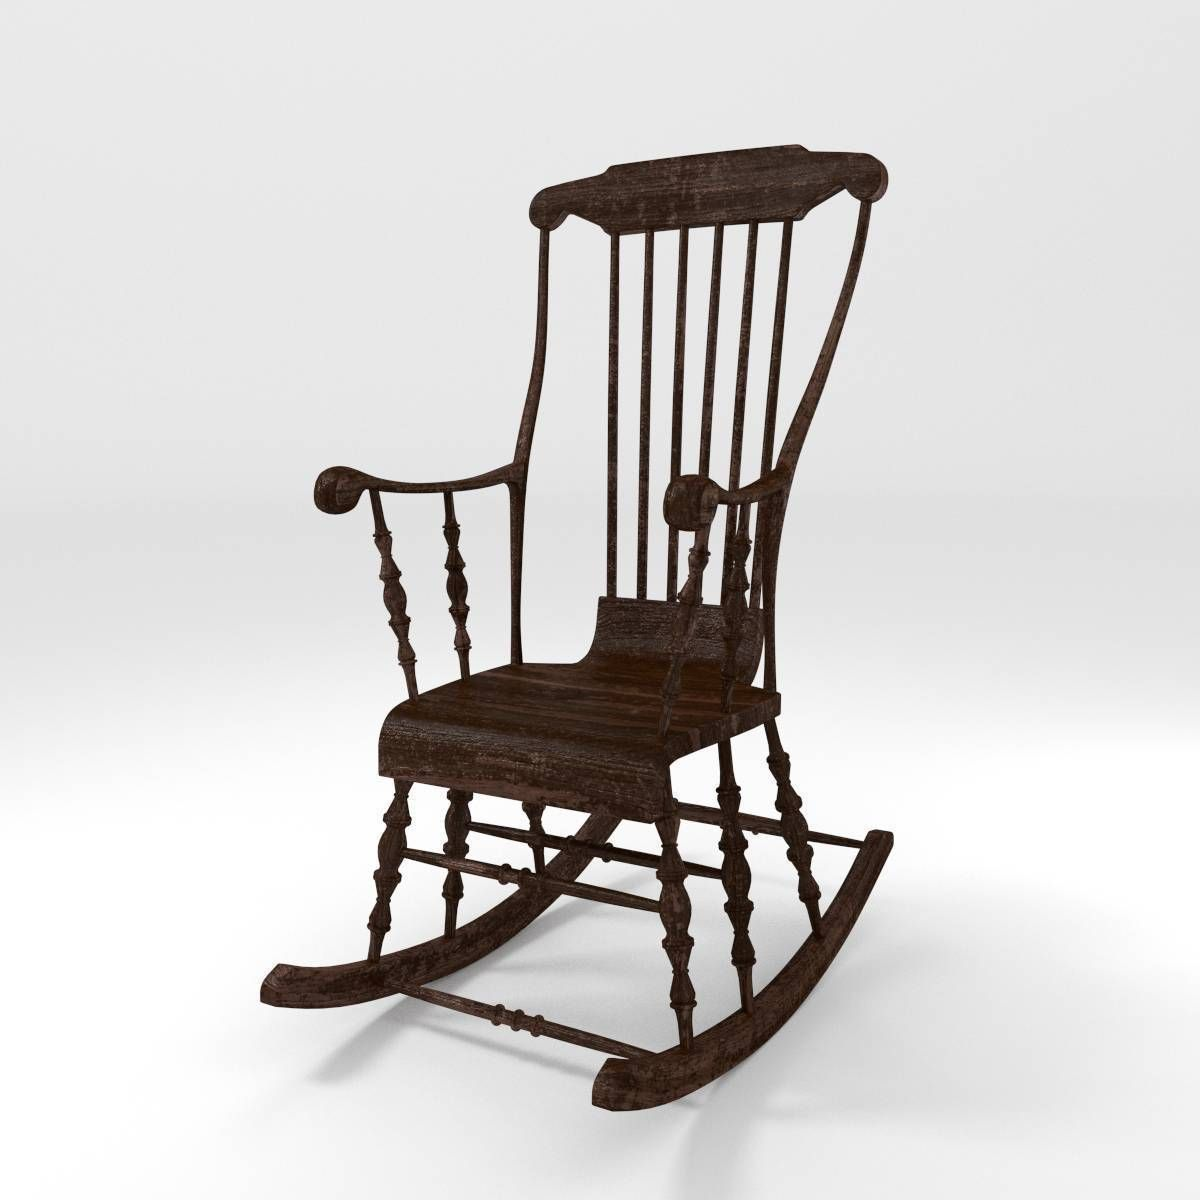 classic rocking chair 3d model obj fbx blend. Black Bedroom Furniture Sets. Home Design Ideas